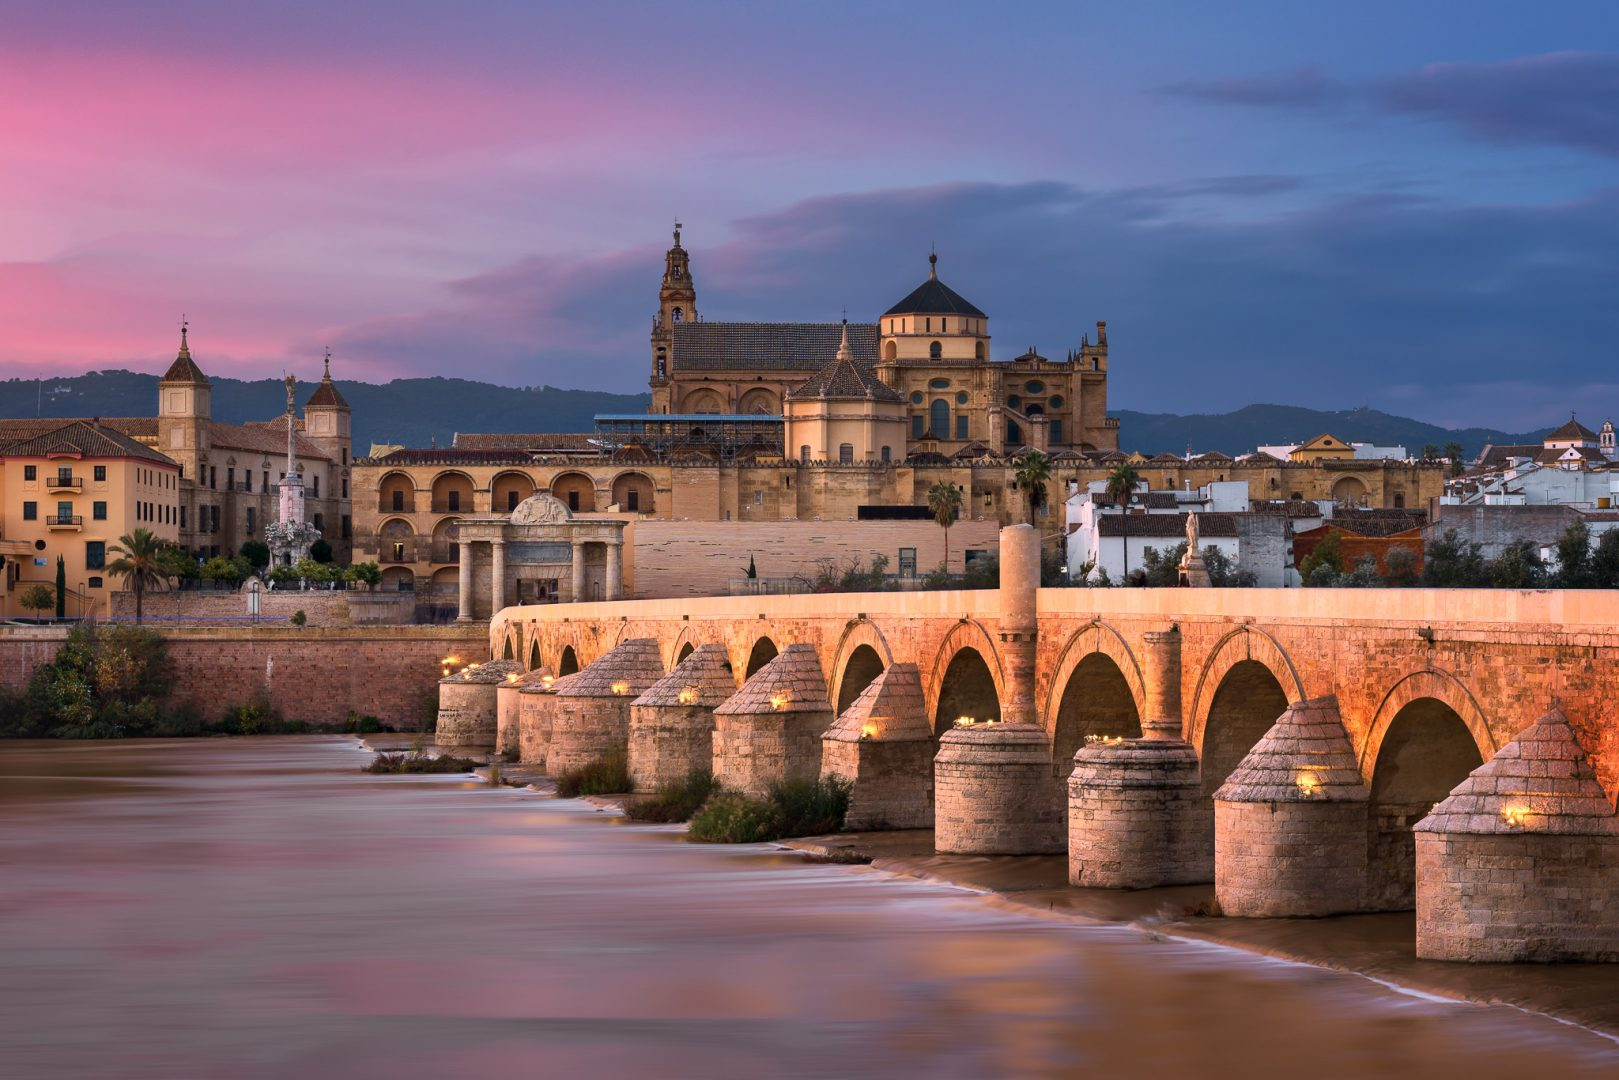 Roman Bridge and Cordoba Skyline at Sunset, Andalusia, Spain